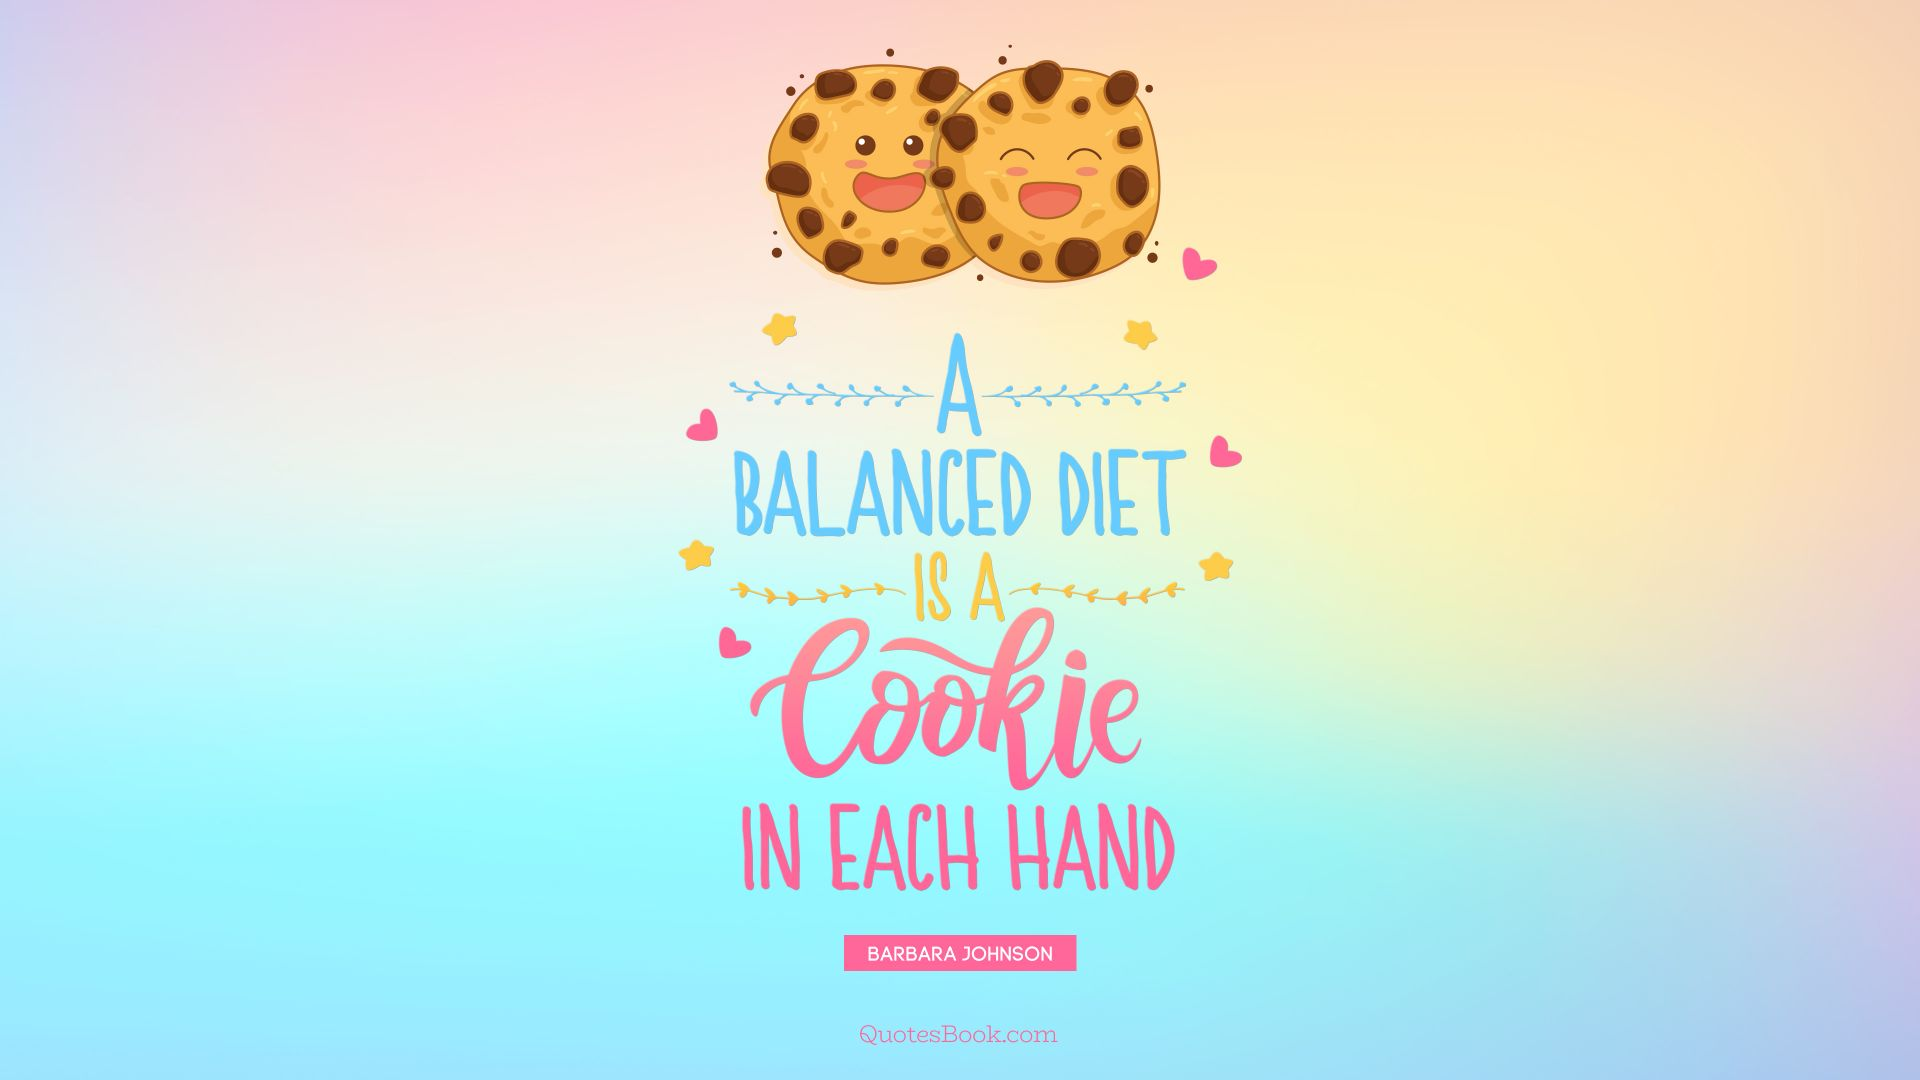 A balanced diet is a cookie in each hand. - Quote by Barbara Johnson